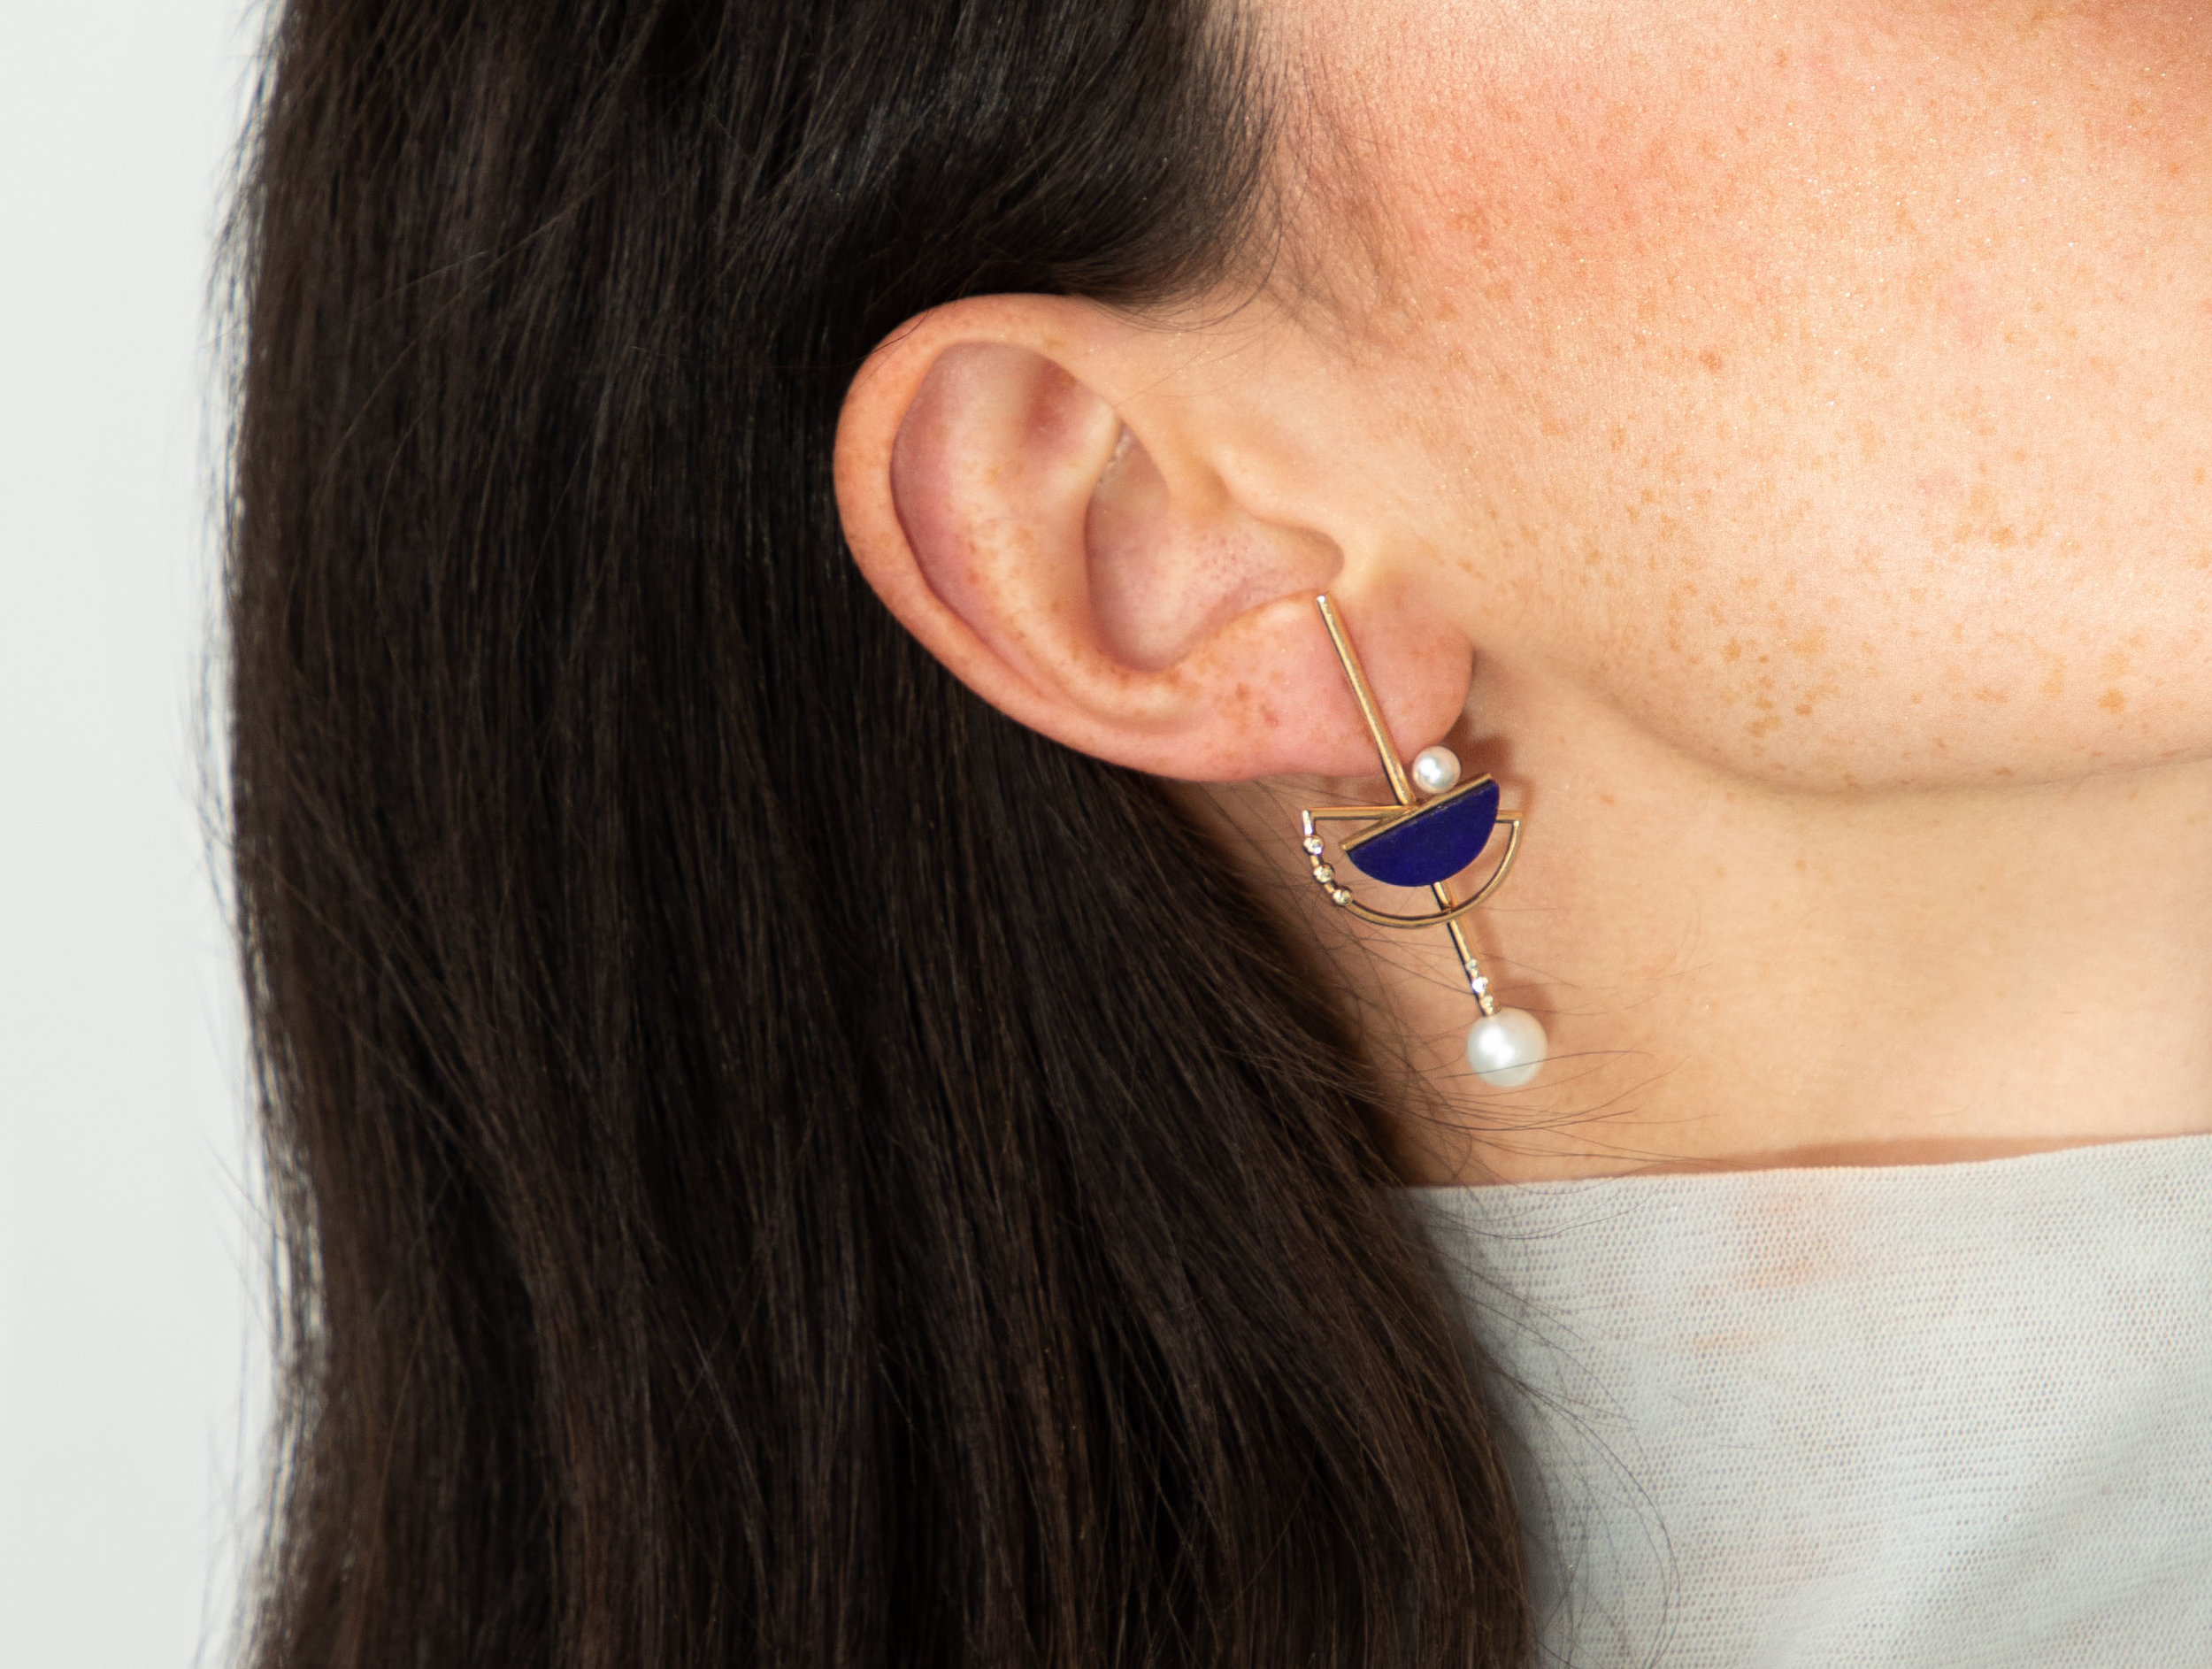 artemis  long earring a modular earring that can be worn in three lengths